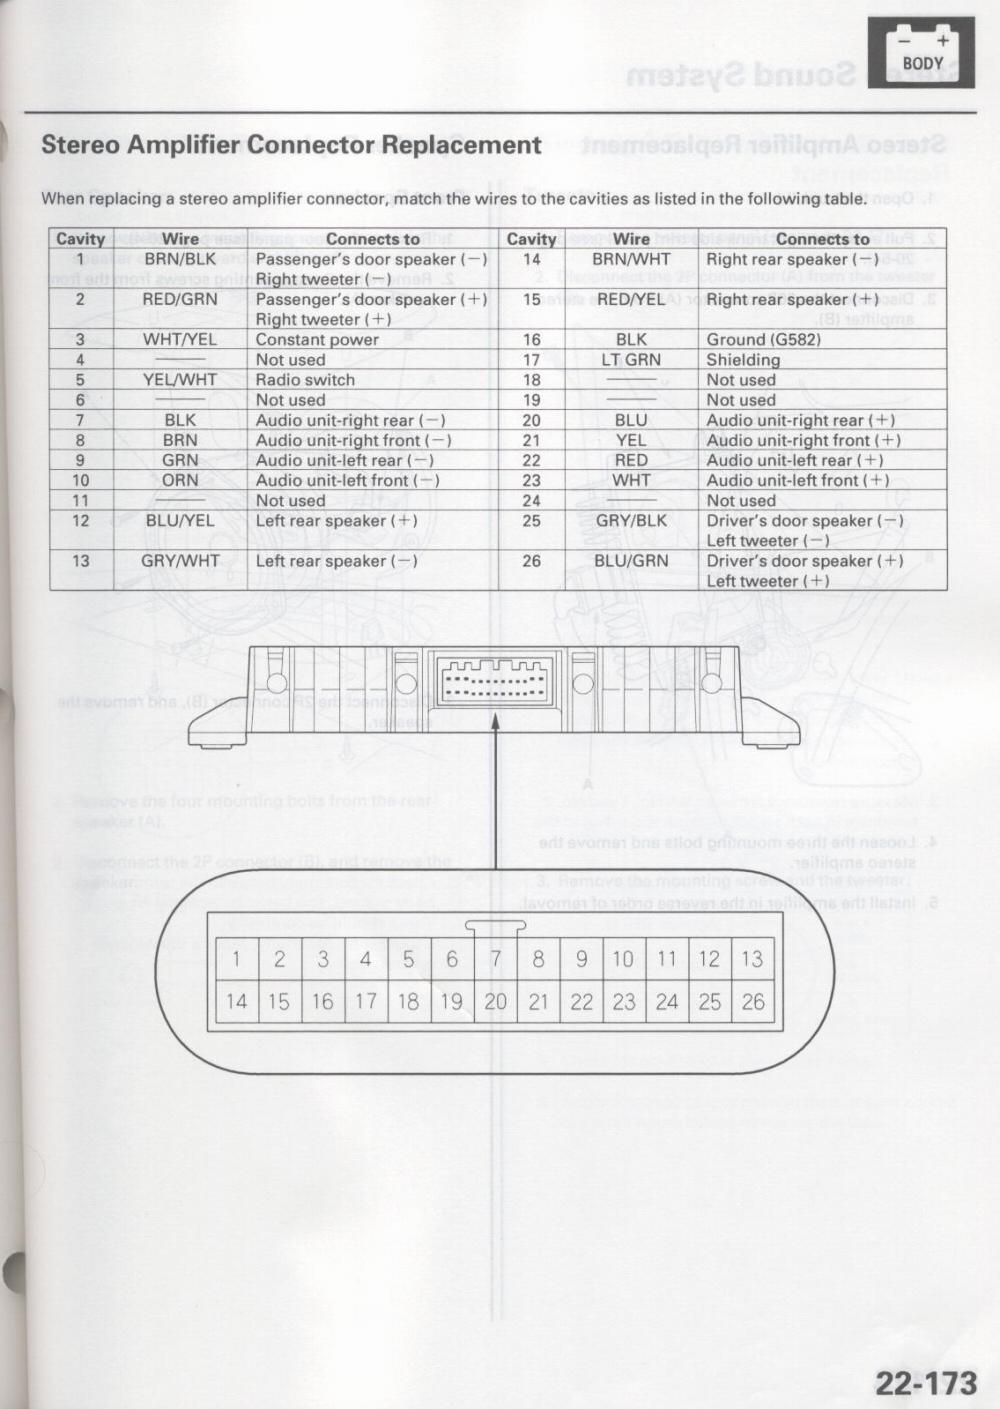 Acura 2002 TL car stereo amplifier wiring diagram harness amplifier wiring diagram readingrat net 2004 acura tl stereo wiring harness at n-0.co